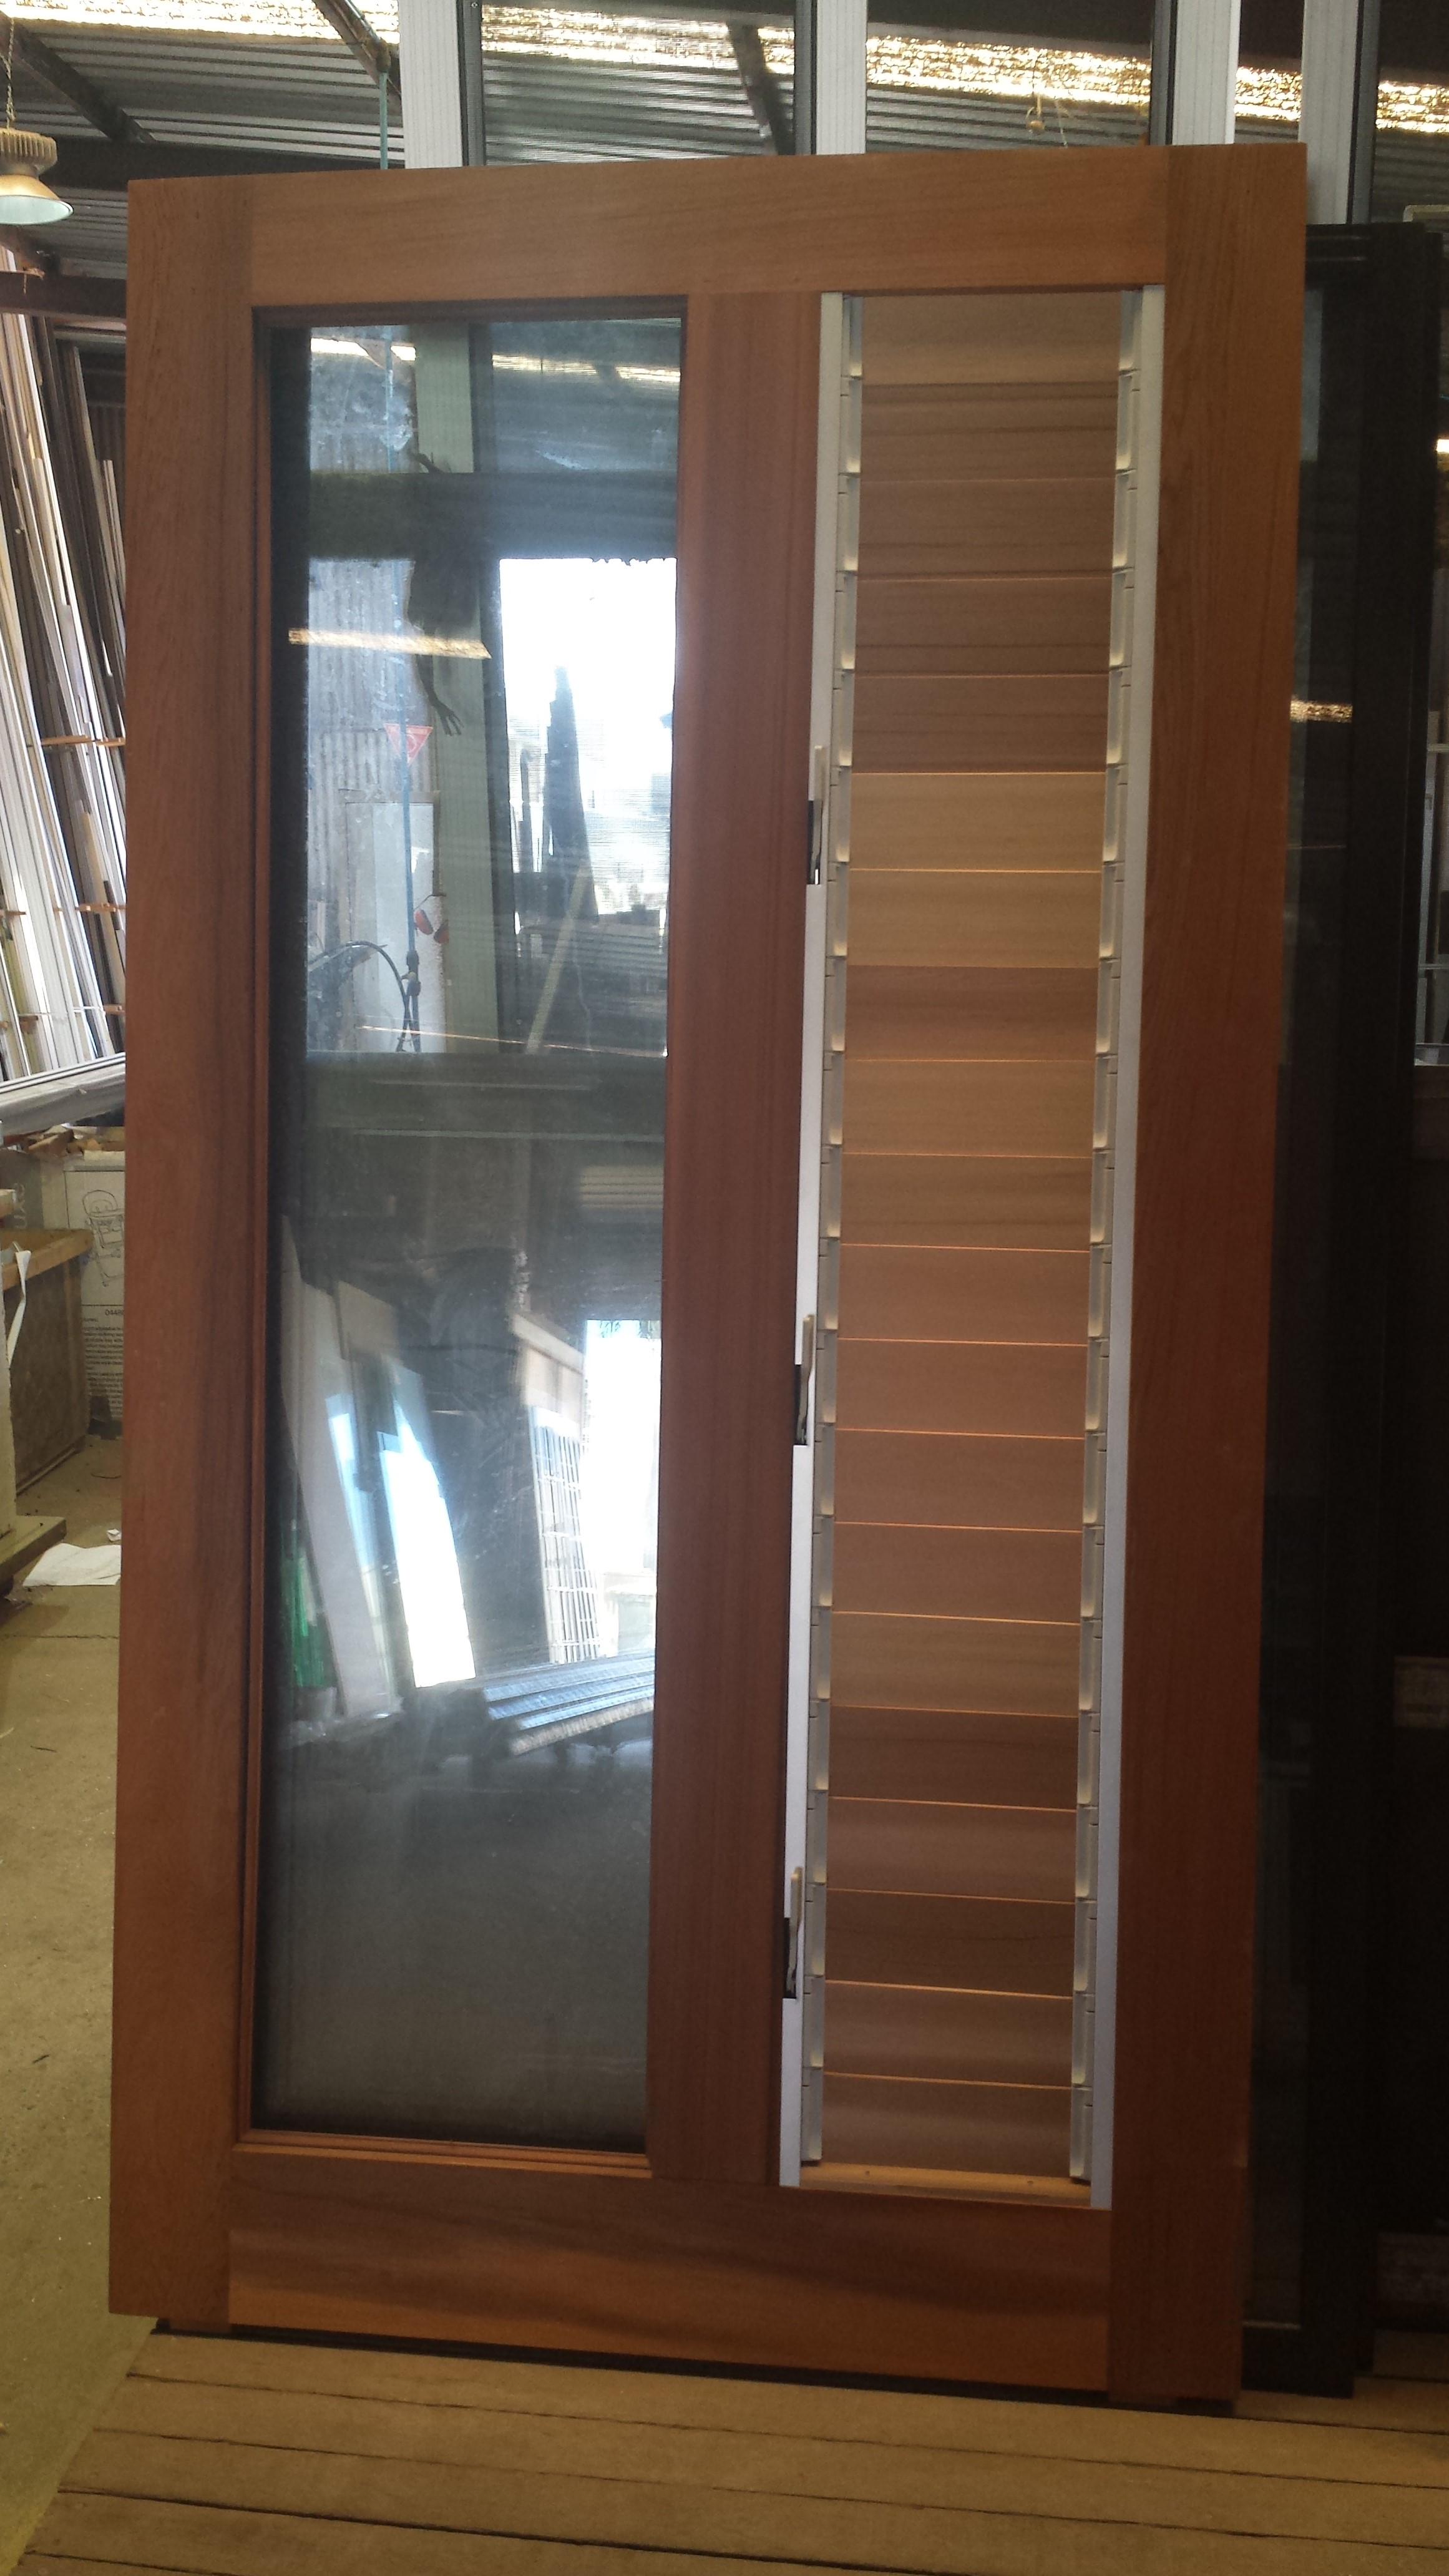 Western Red Cedar Pivot door with timber louvres panes. Ready to be installed! & Pivot door with timber louvres \u2013 THE WINDOW MAN